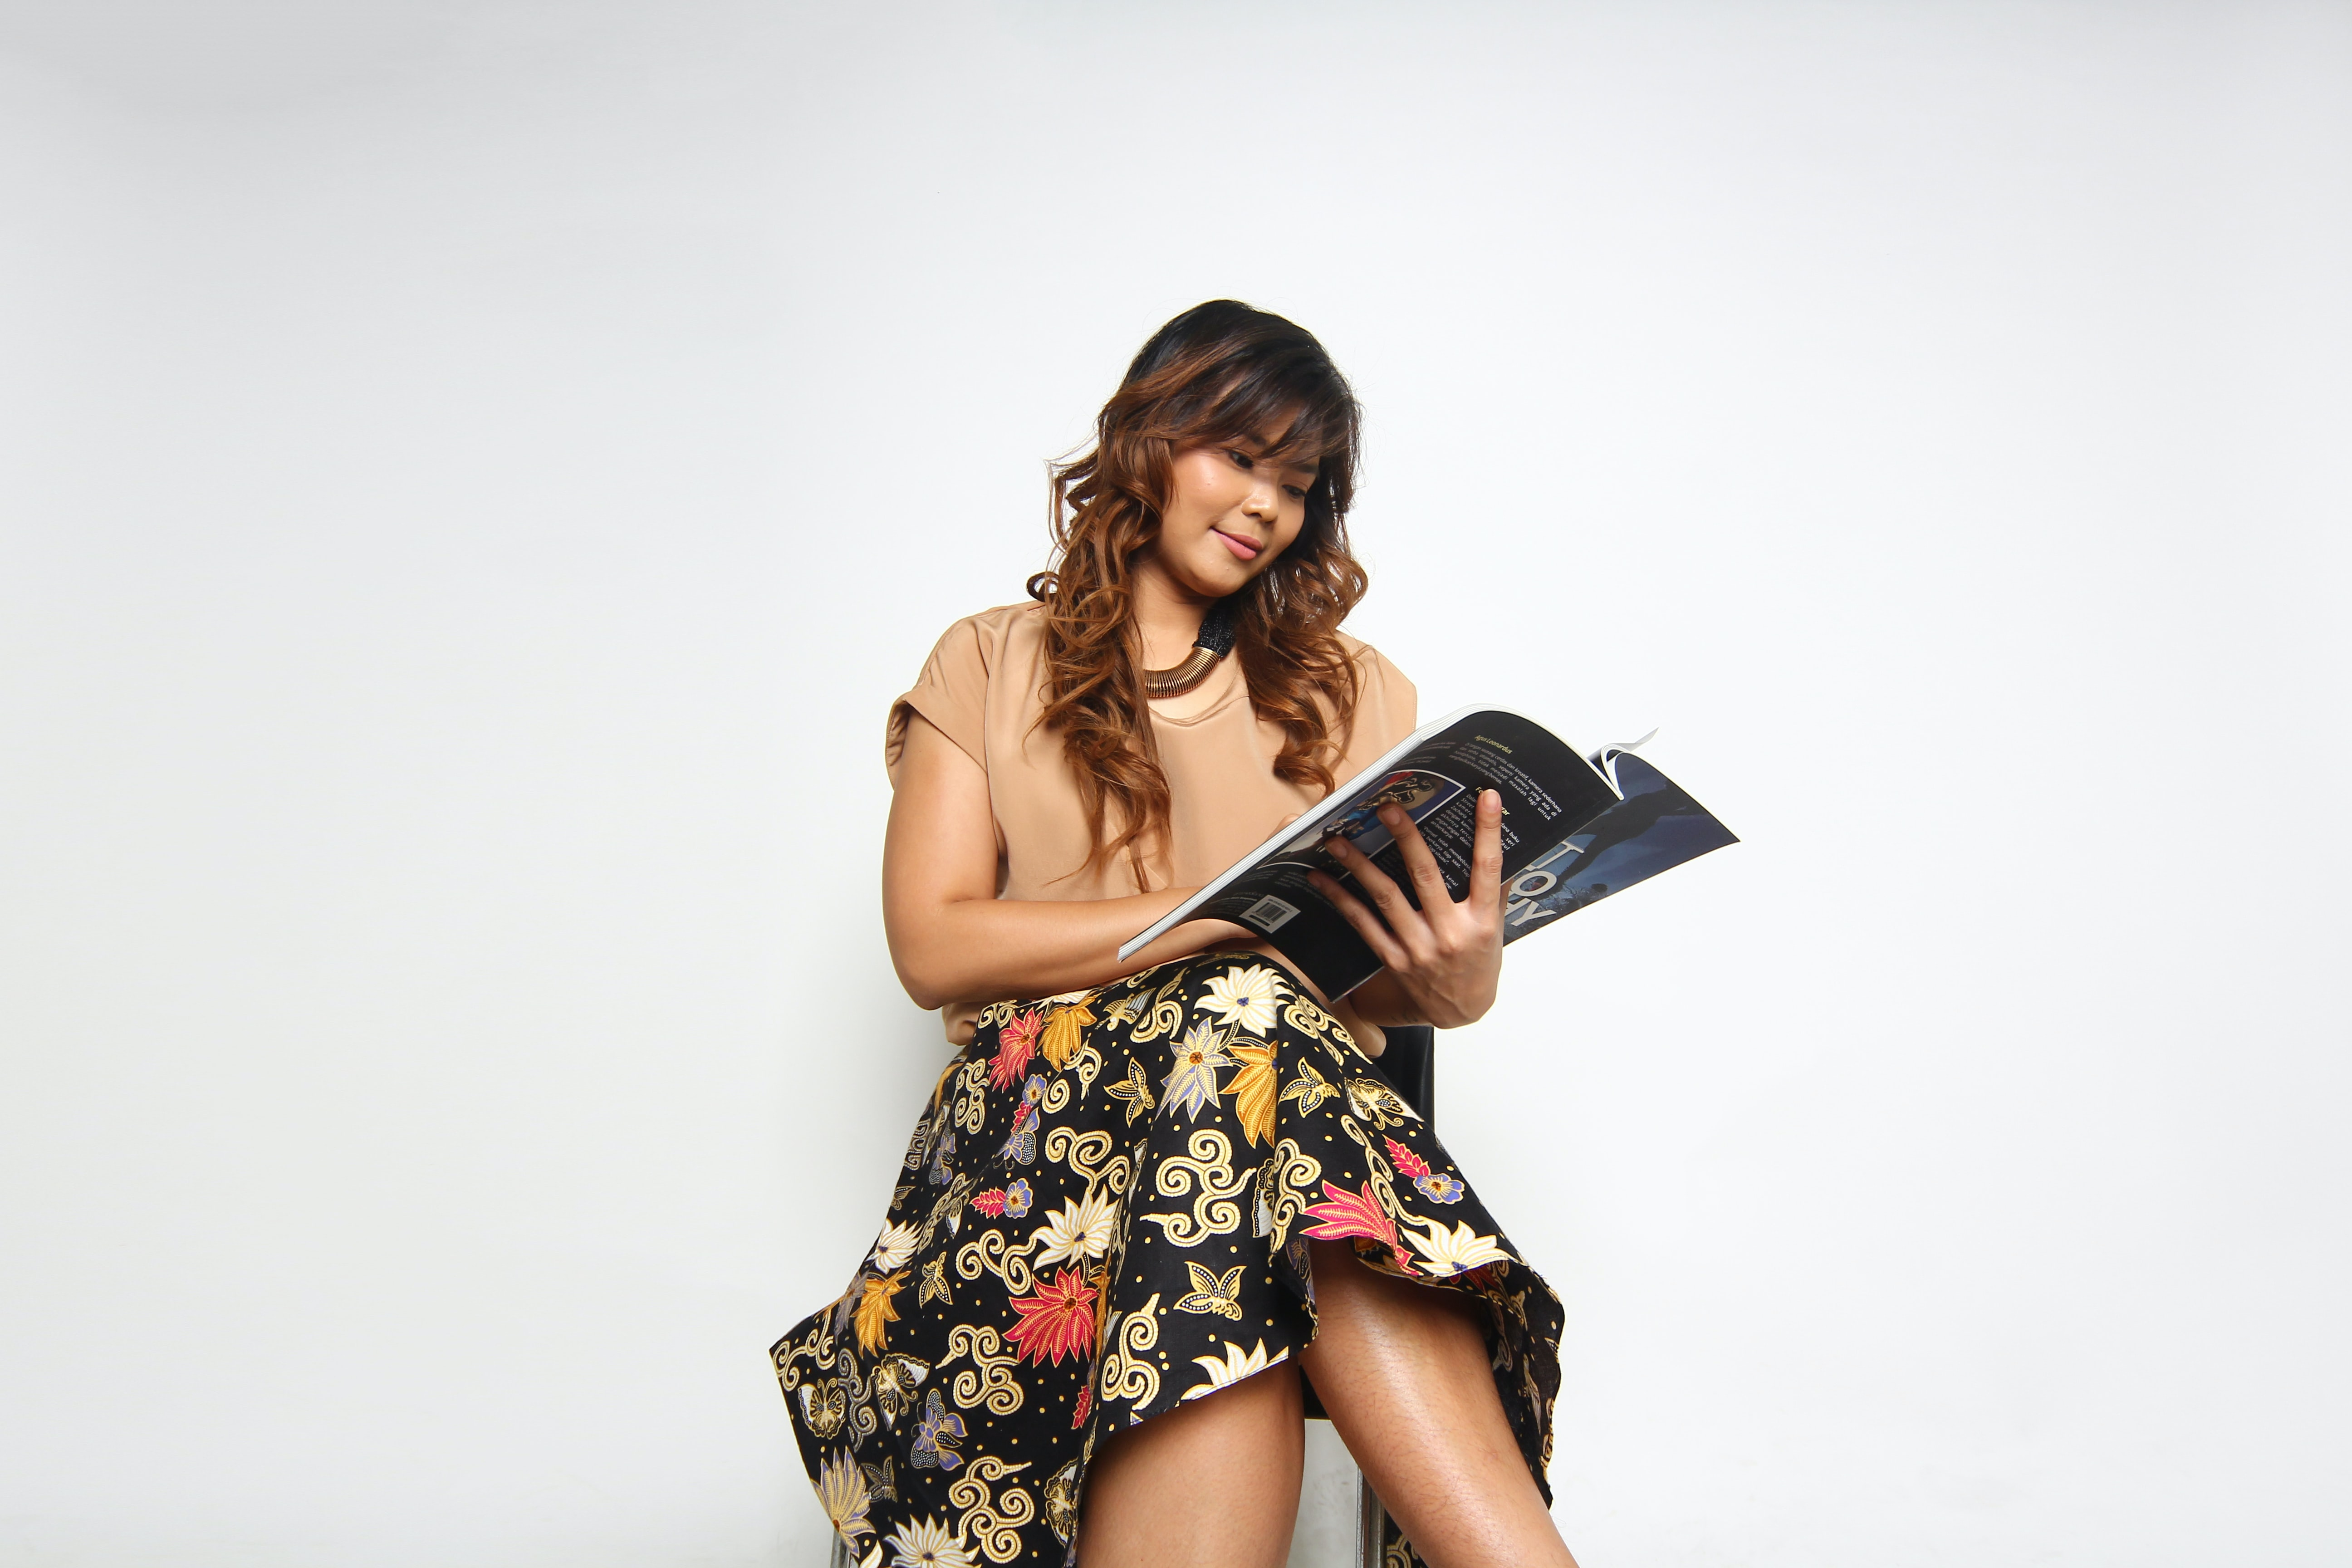 woman sitting on chair reading book